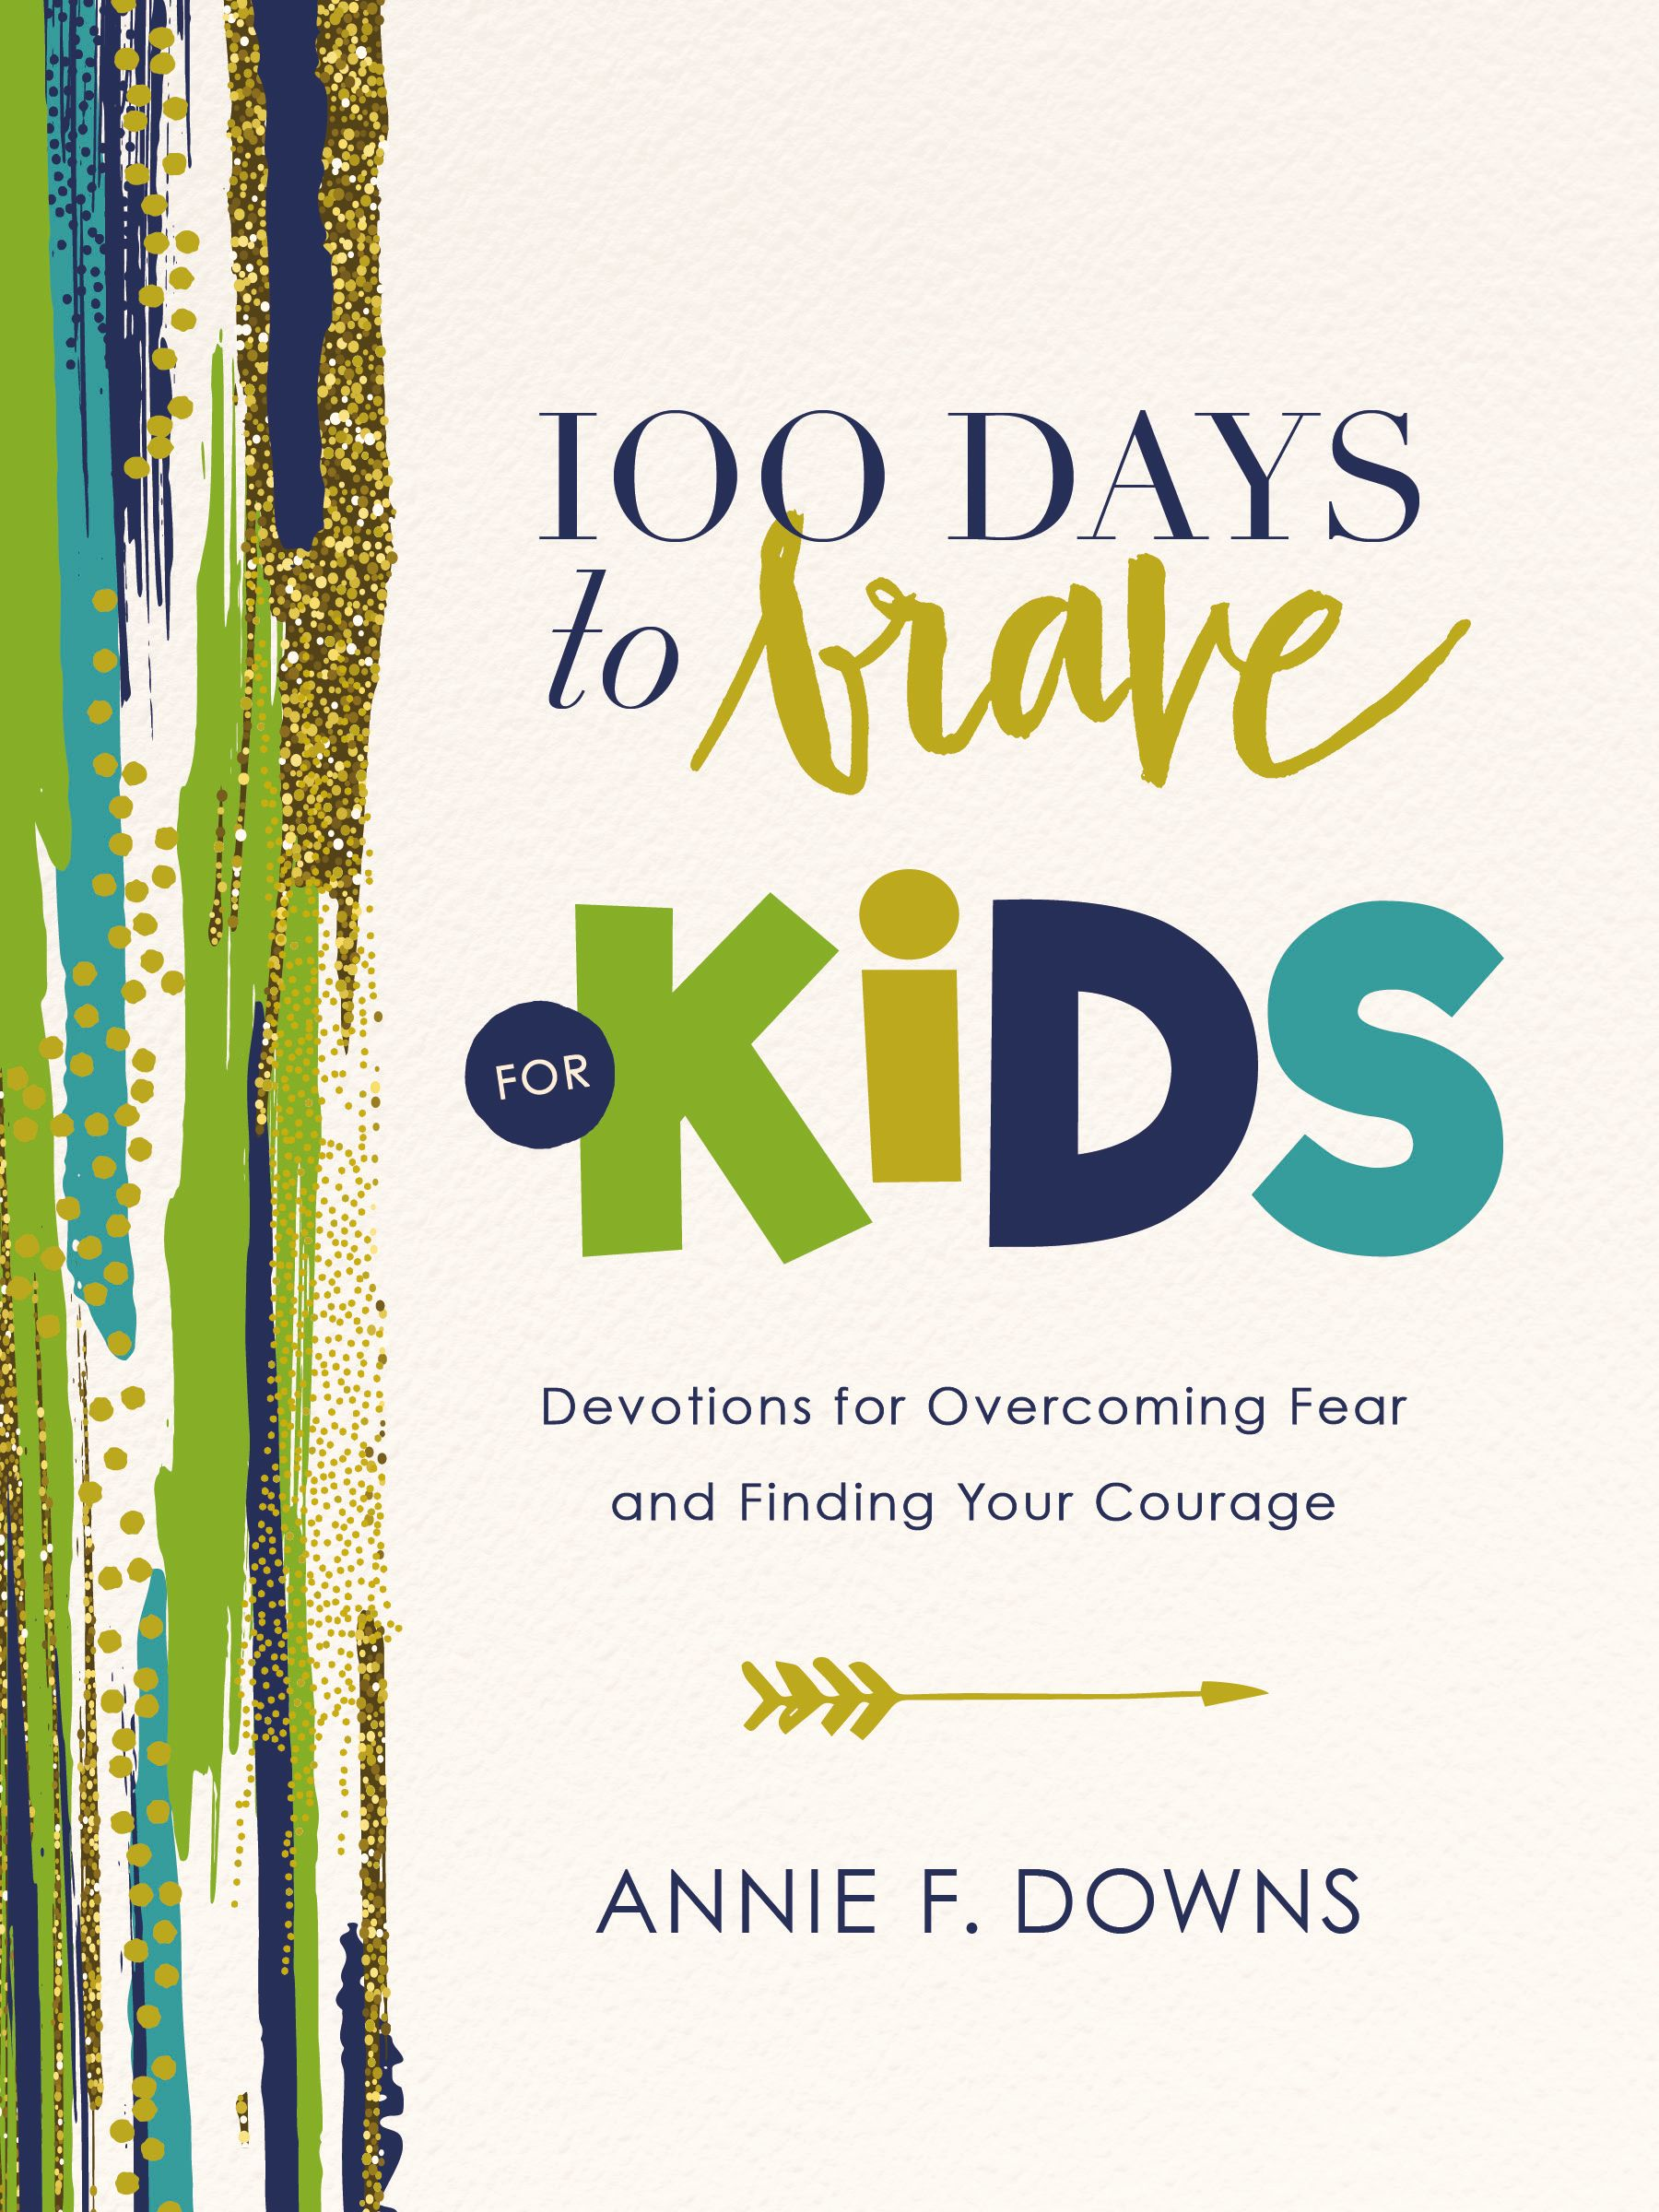 100 Days to Brave for Kids